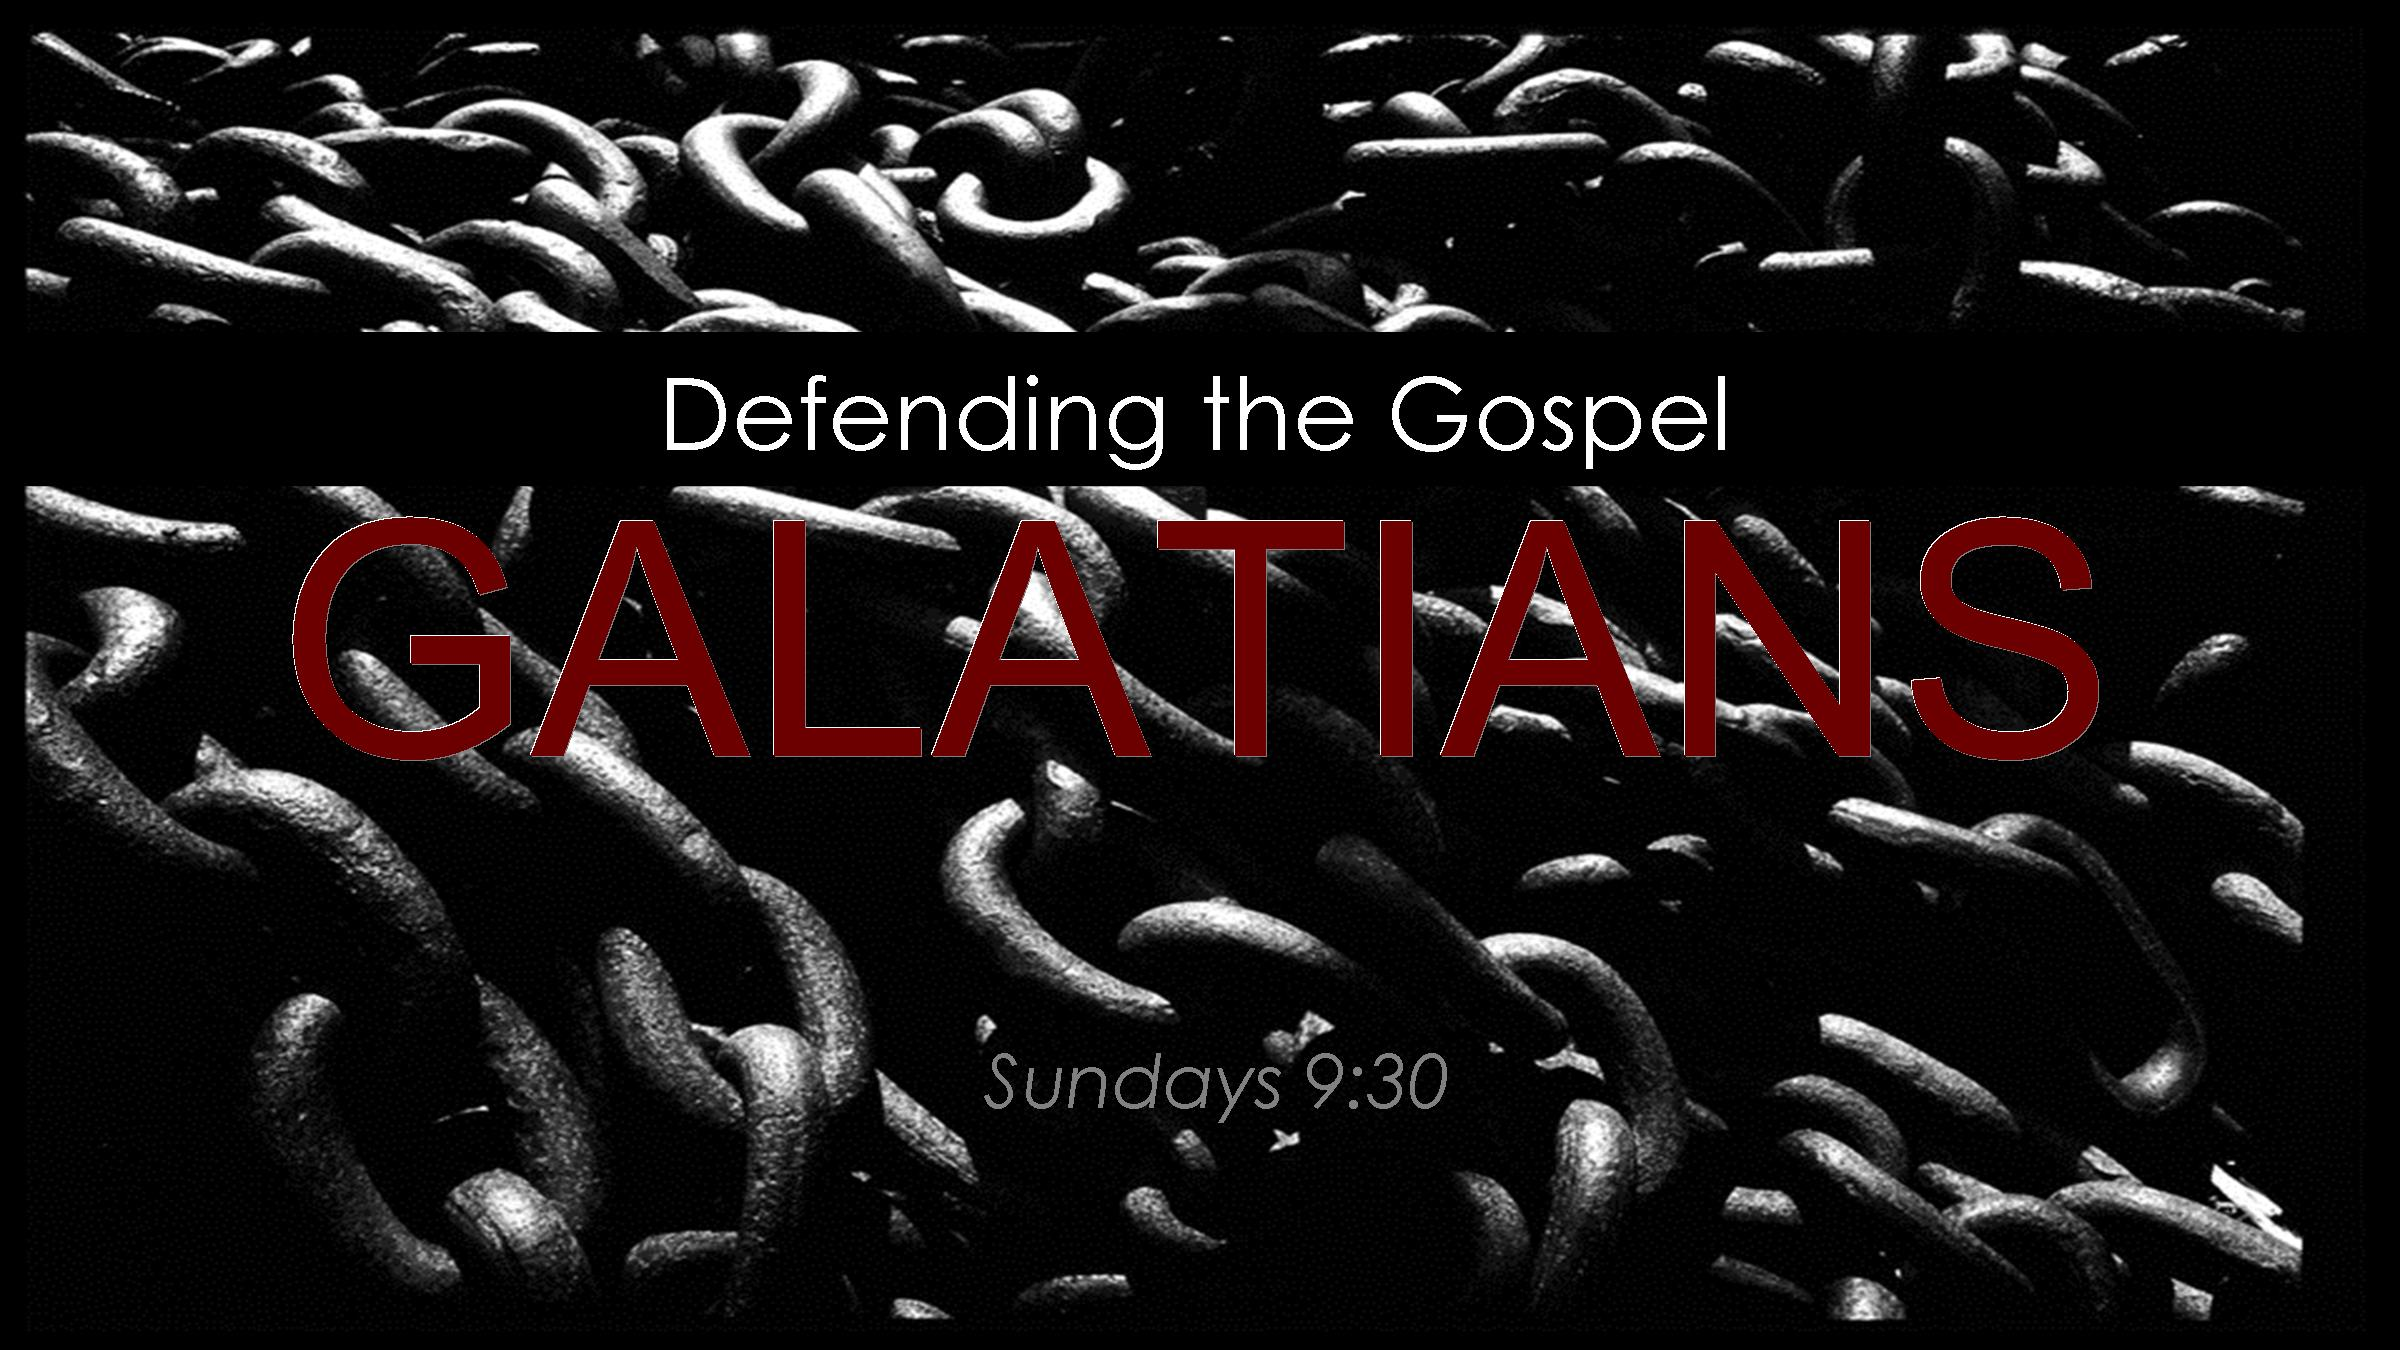 Join us at 9:30 for a verse by verse study in Galatians